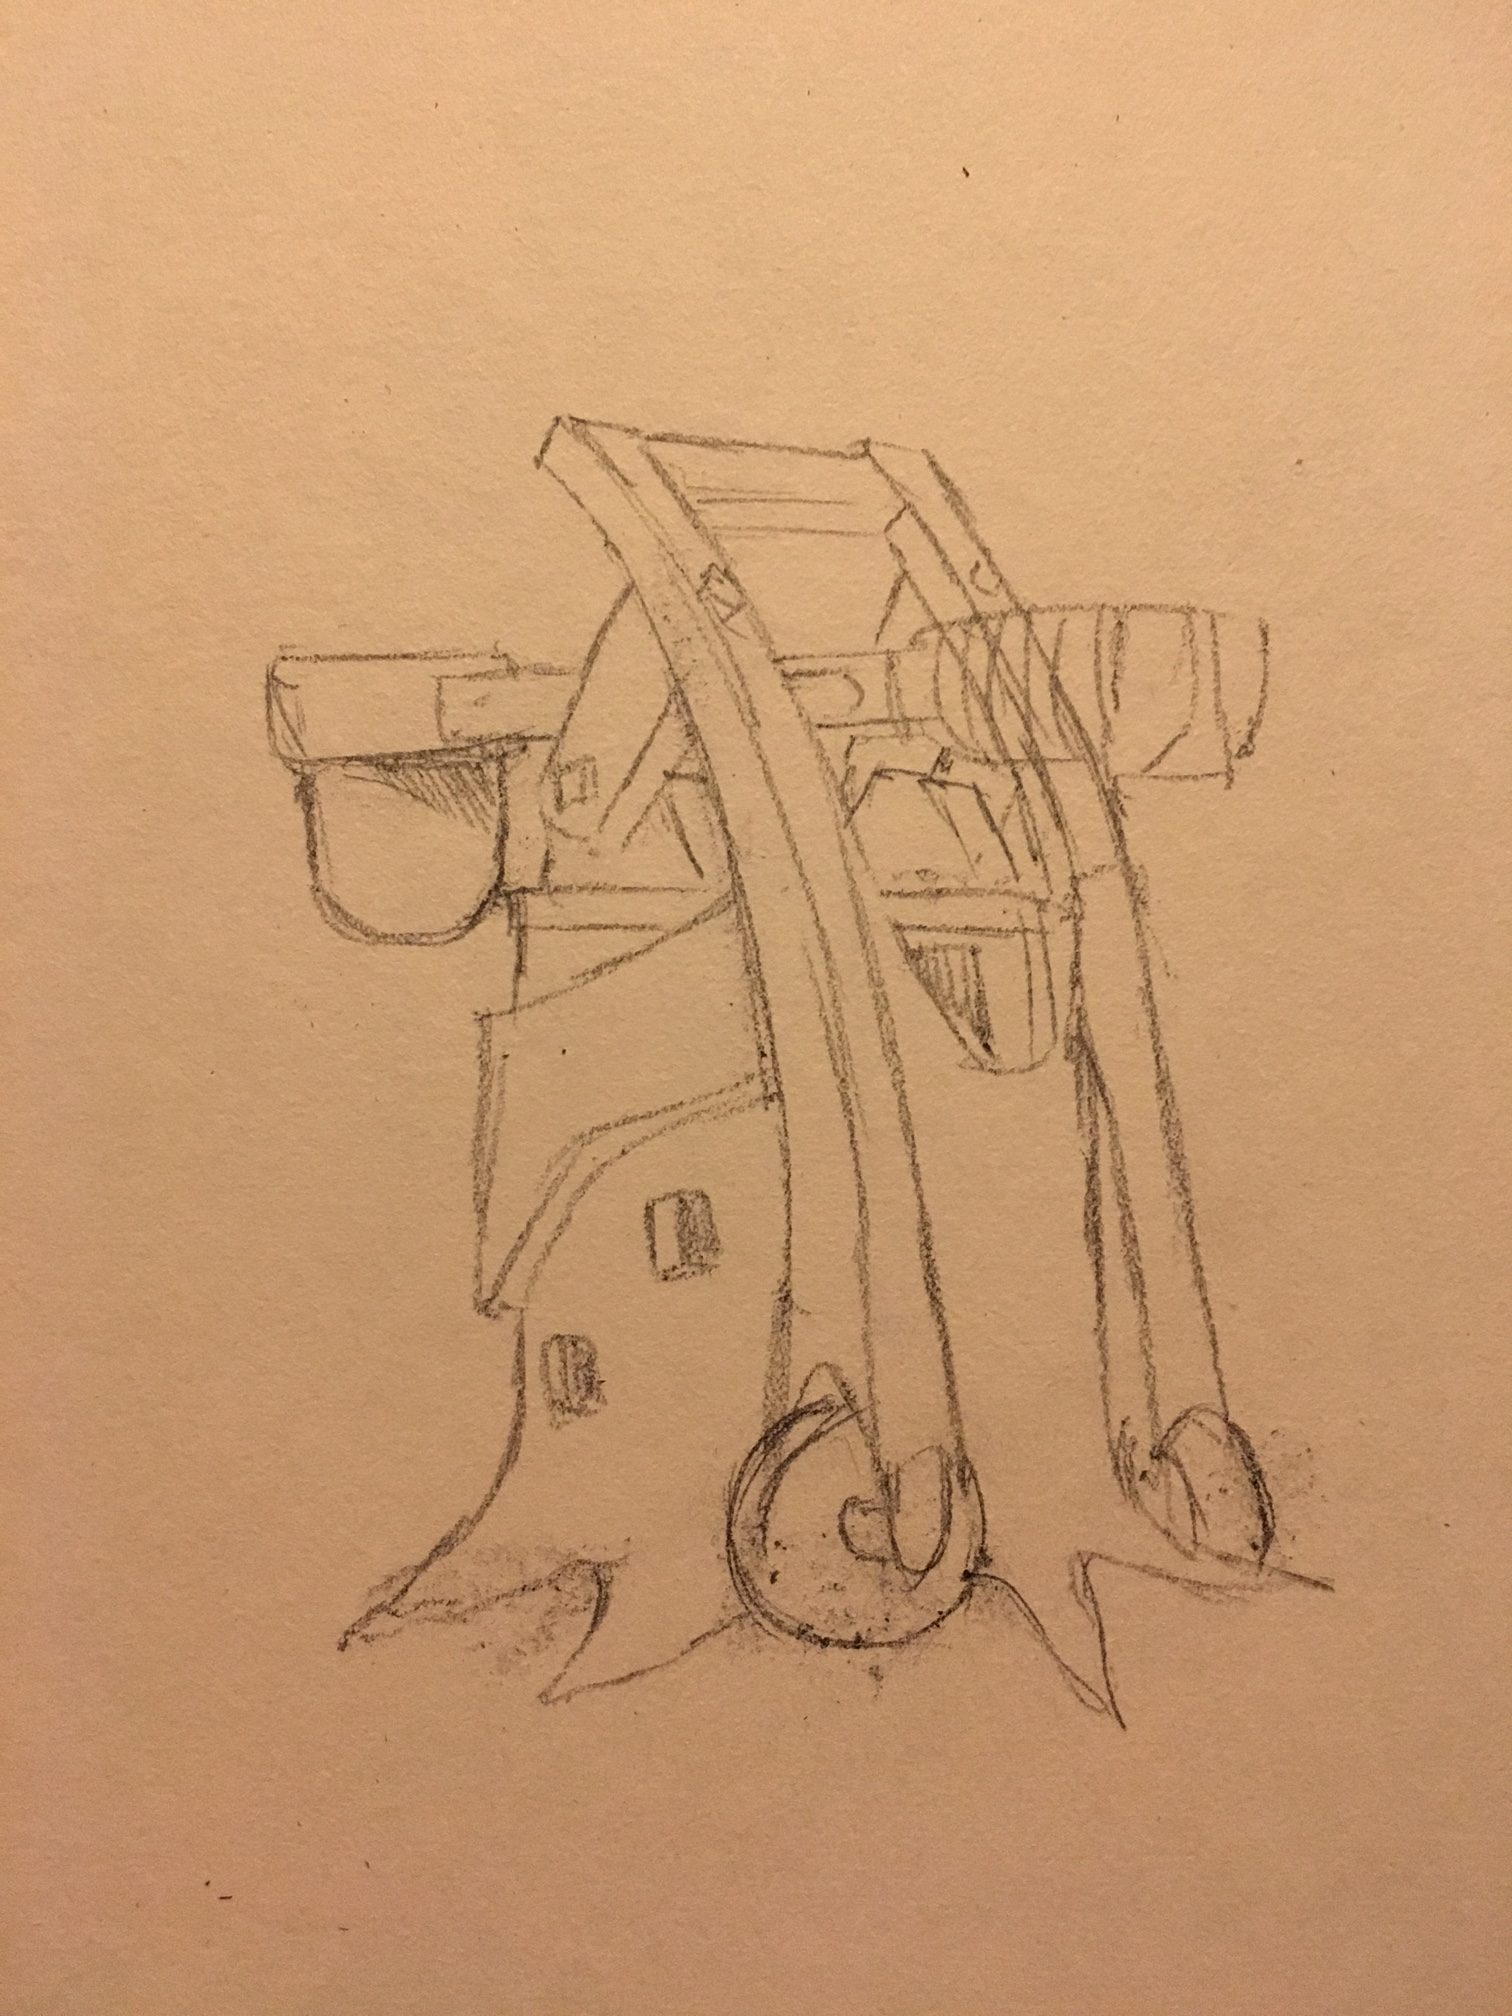 Pestilence Launcher concept sketch